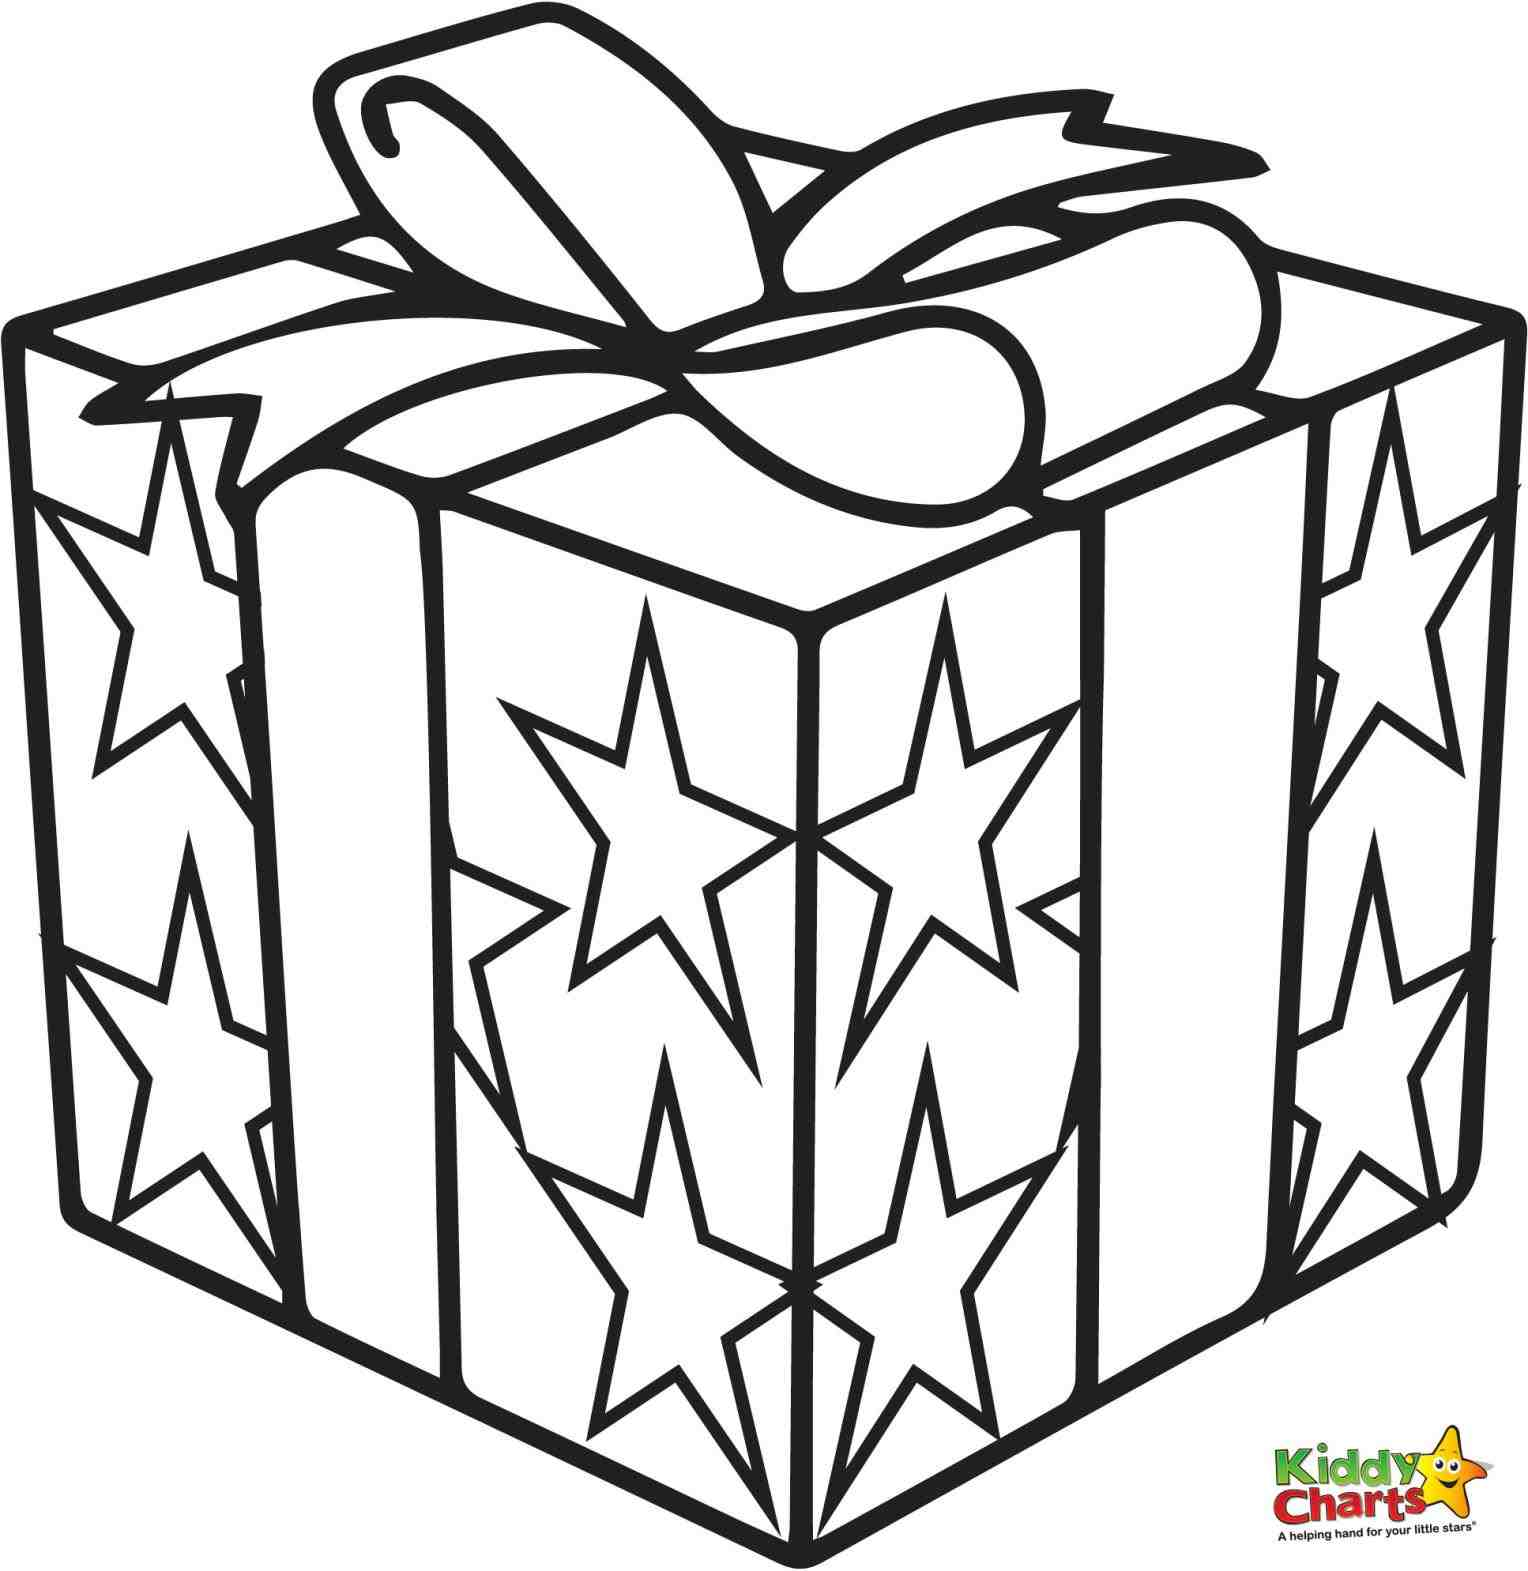 1528x1571 Drawing Free Download Clip Art Line Christmas Presents Drawings